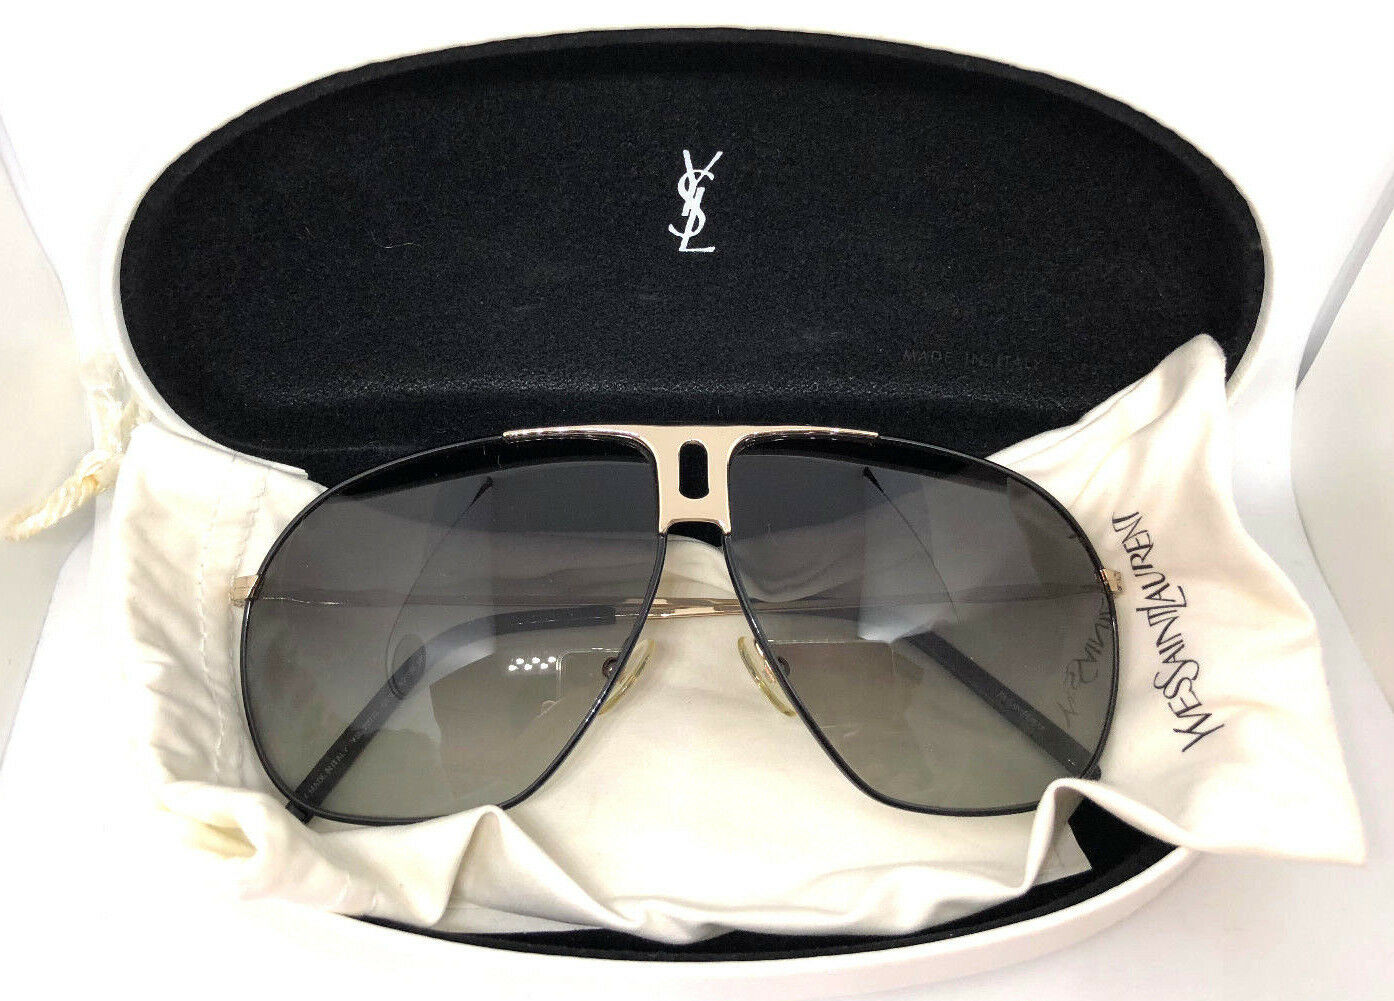 Cloth Black 2117s Bag Sunglasses Yves Ysl Case In Laurent Silver Saint Aviator CoedxrB